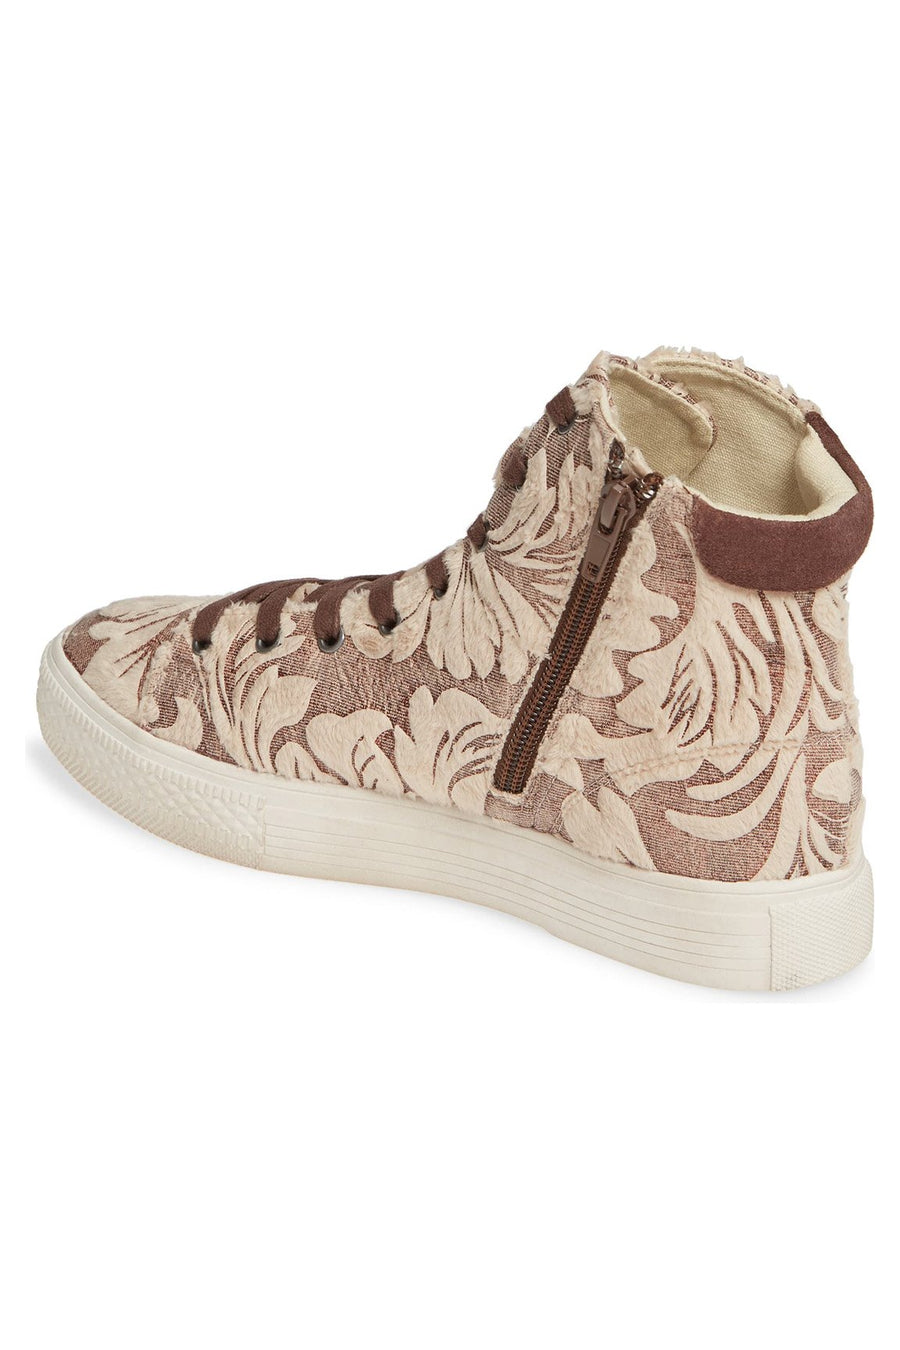 Eagle Faux Fur Damask Beige High Top Sneaker Master